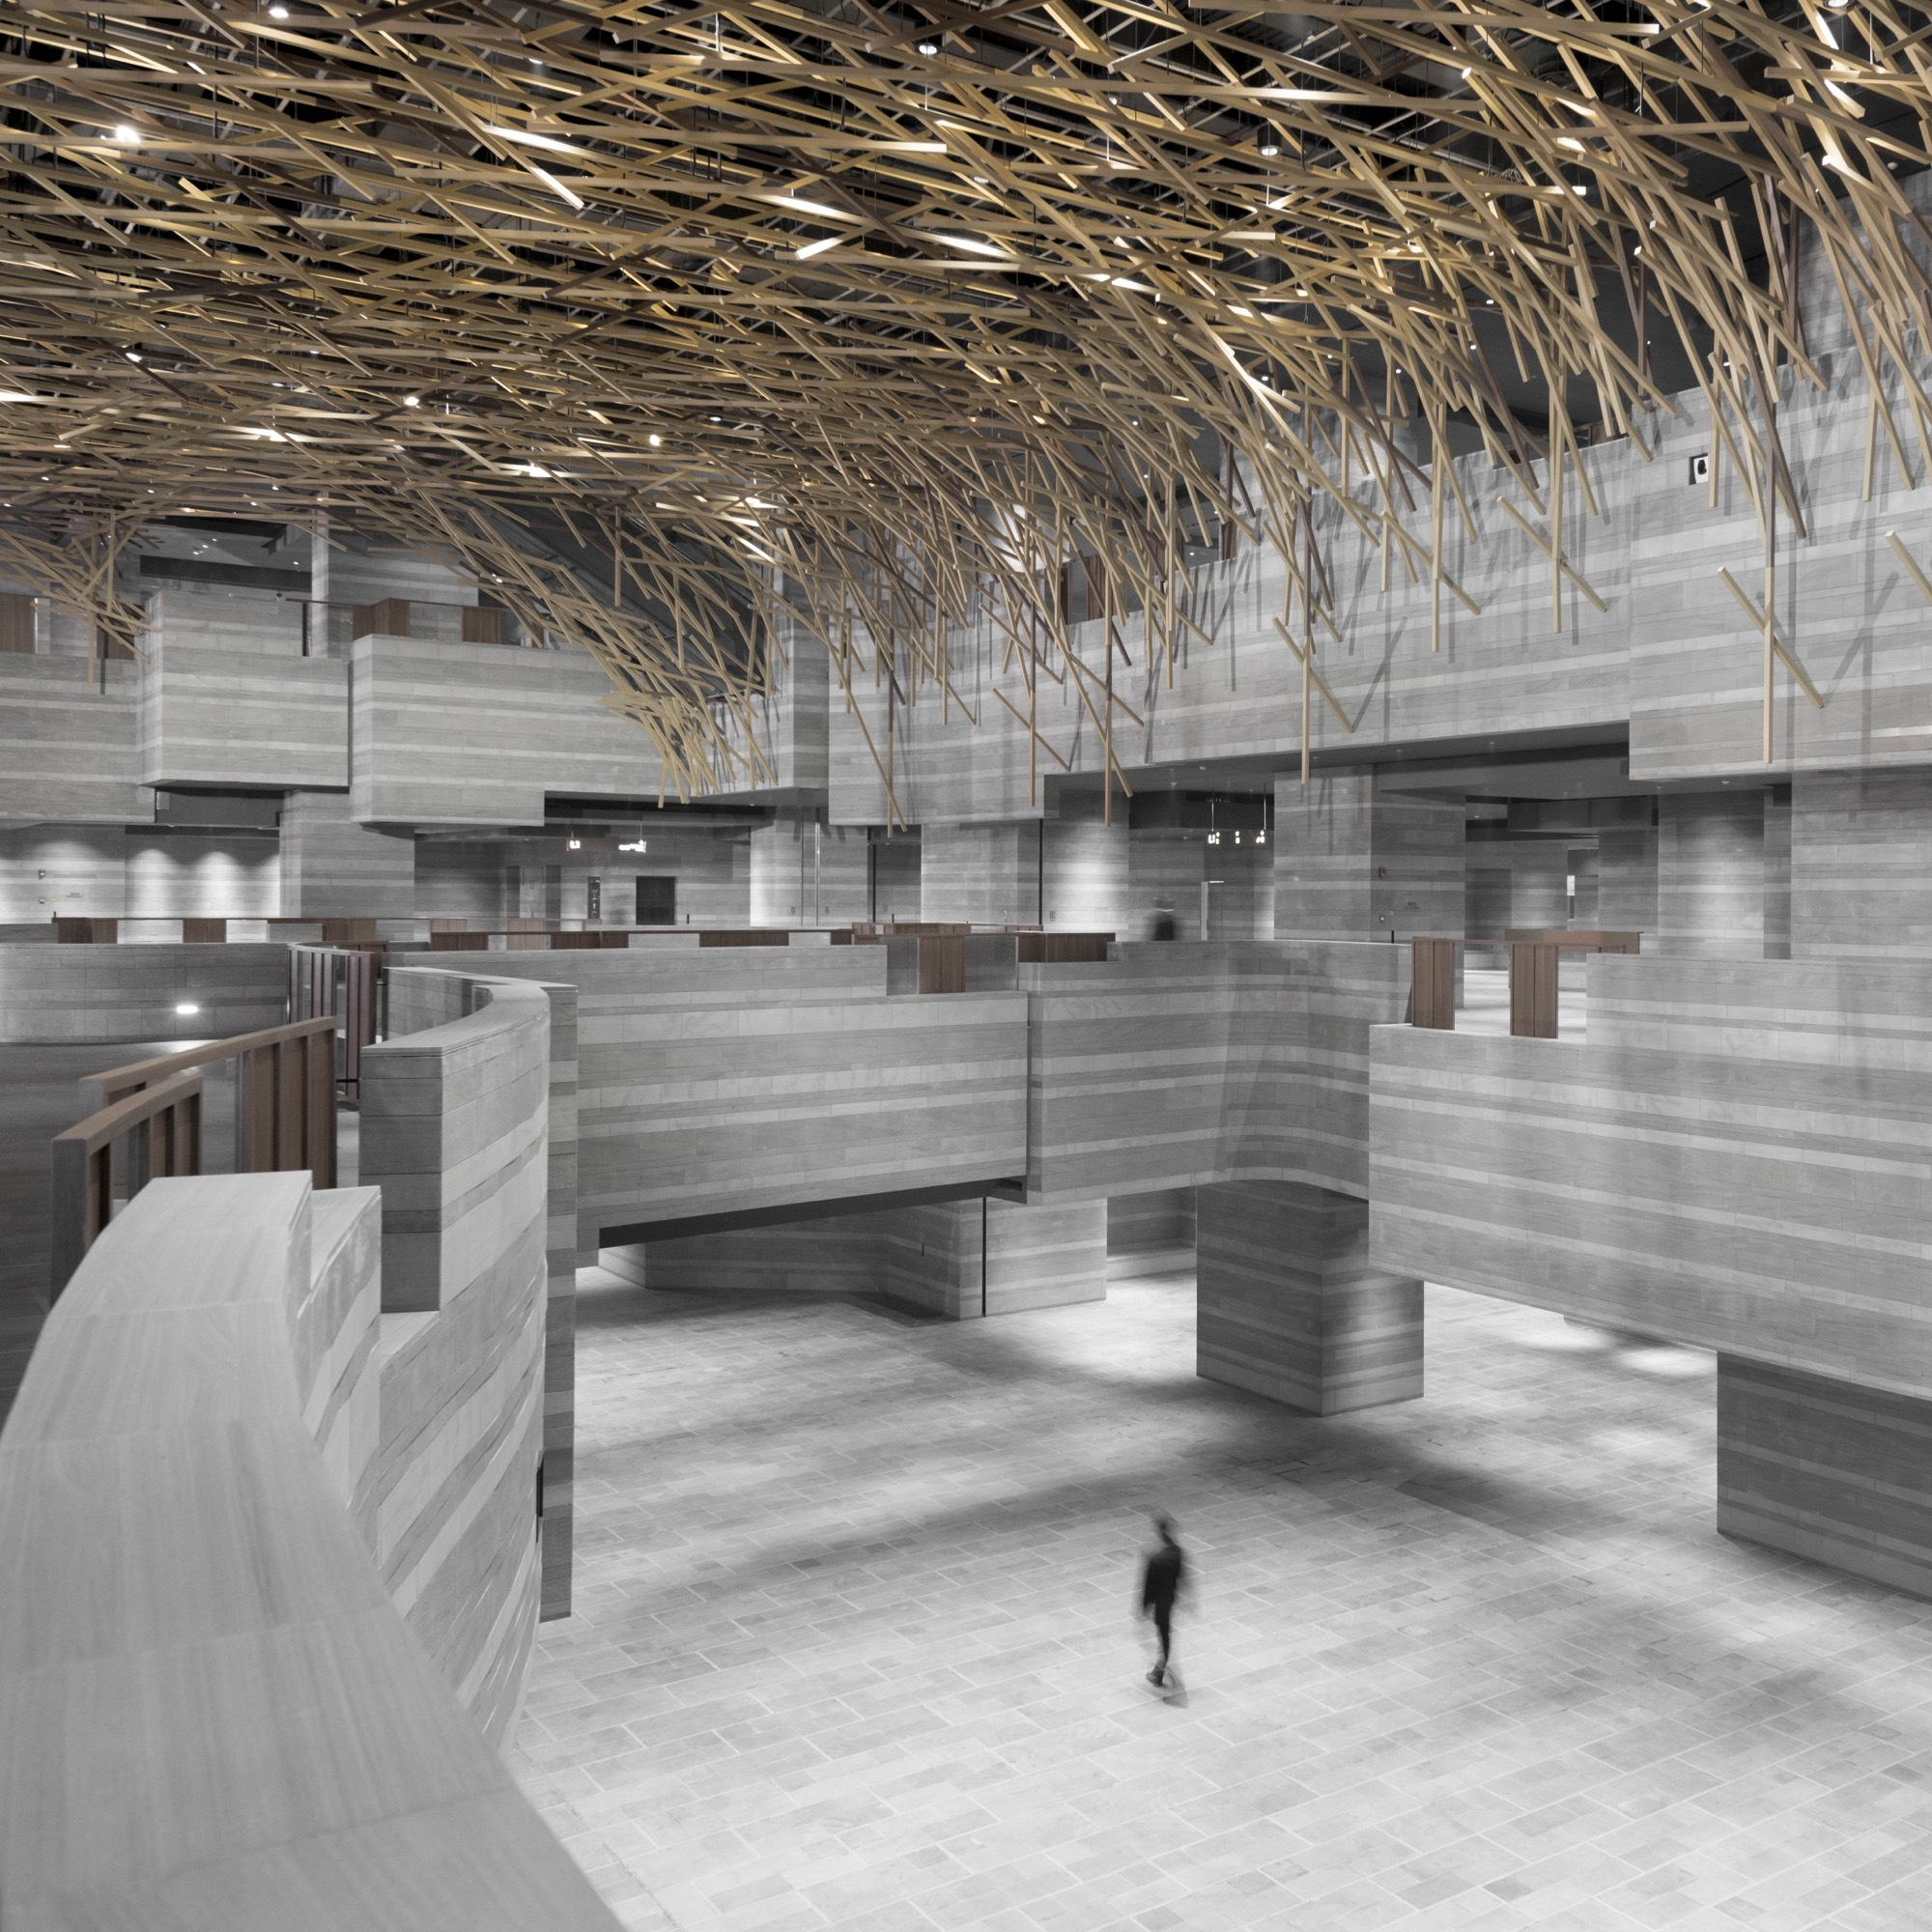 Interior Design Home Decorating Ideas: The Hub Performance And Exhibition Center / Neri&Hu Design